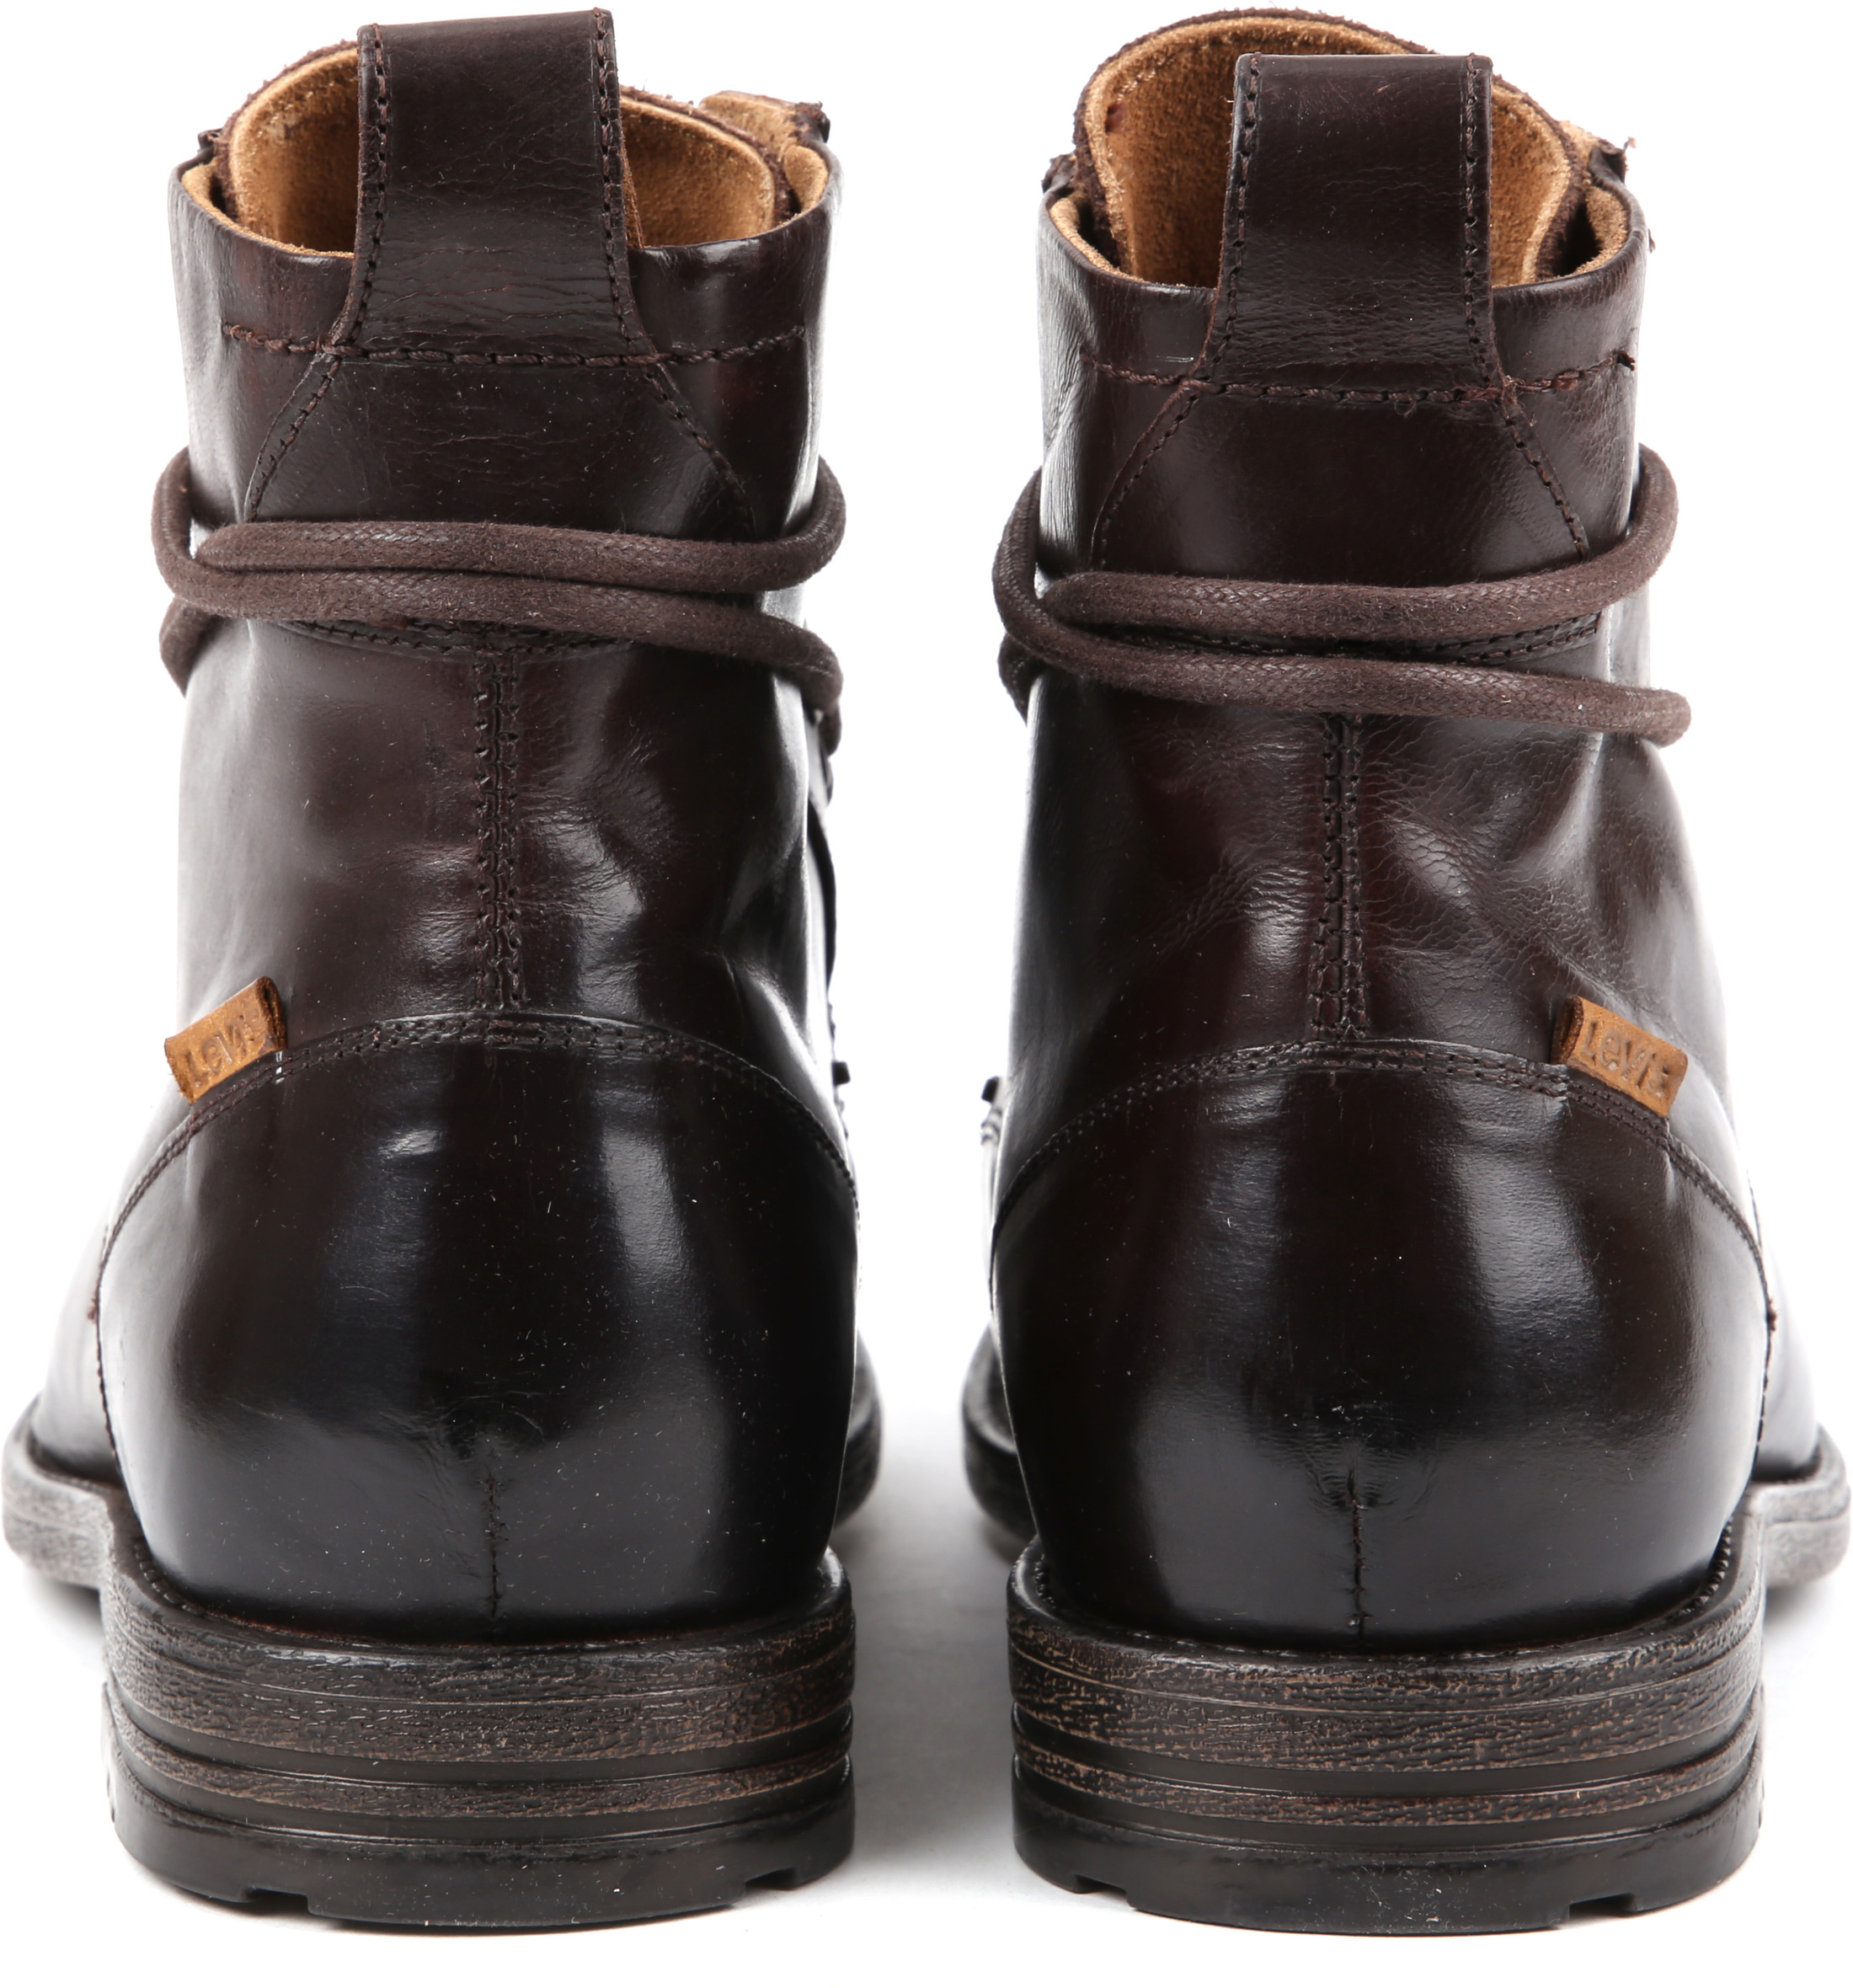 Levi's Boots Emerson Dark Brown Lether foto 3